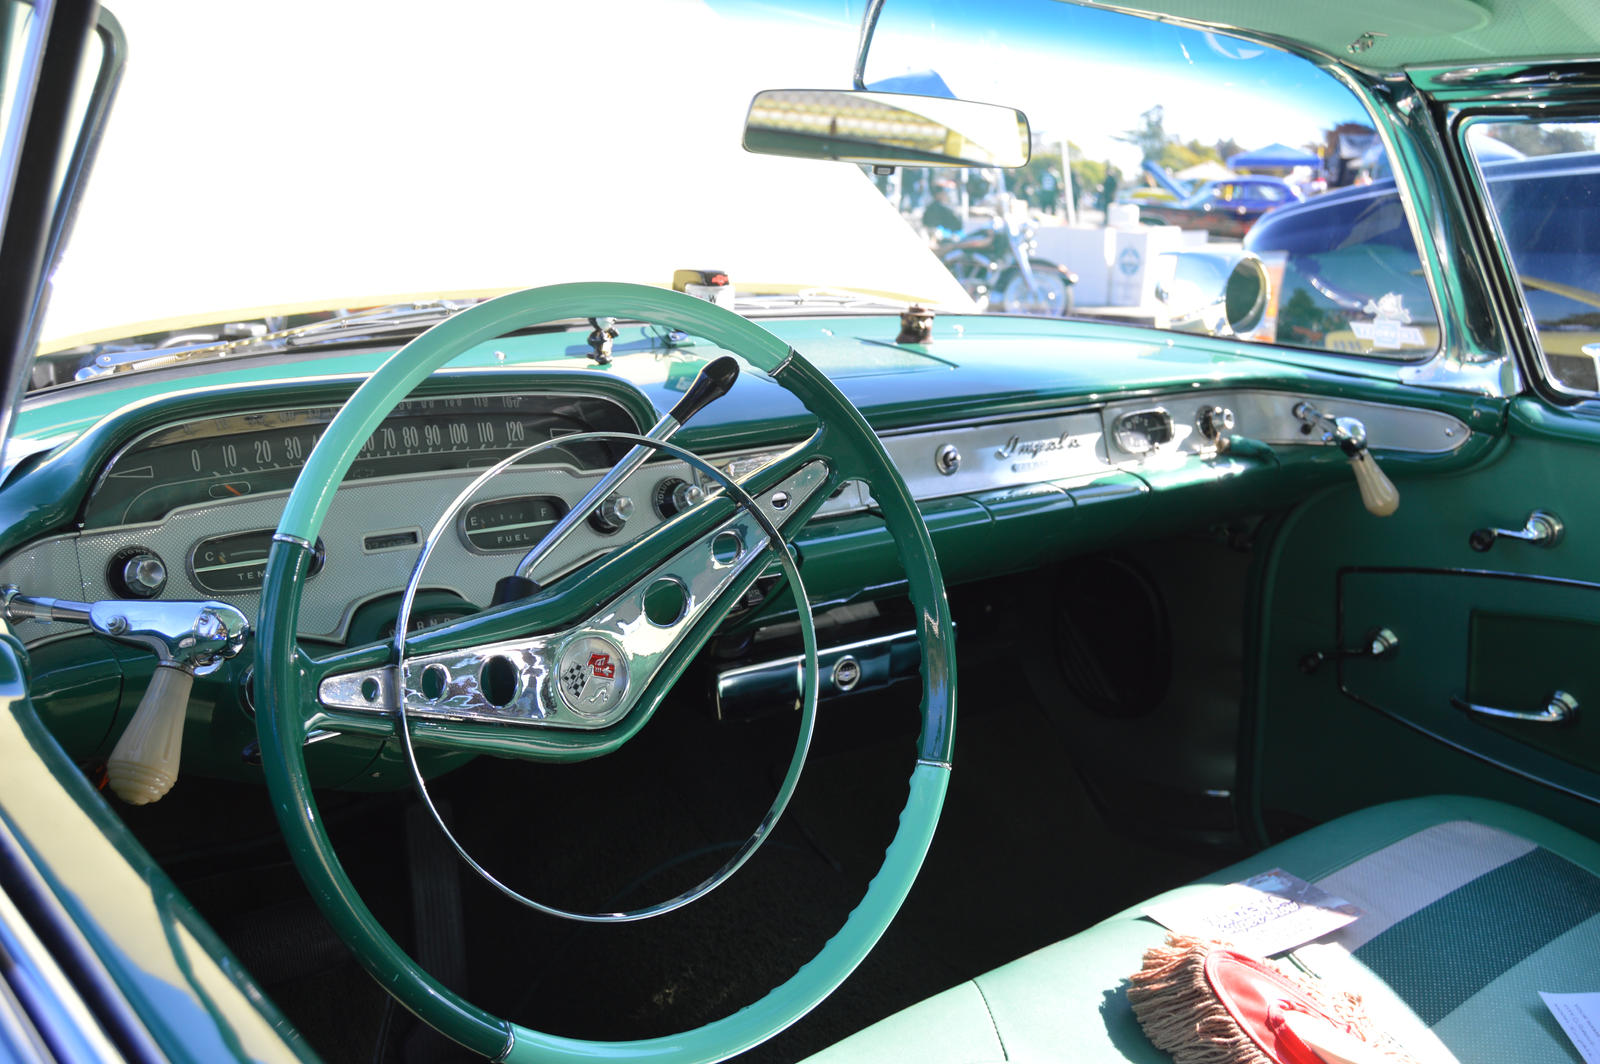 1958 Chevrolet Impala Interior Images Galleries With A Bite